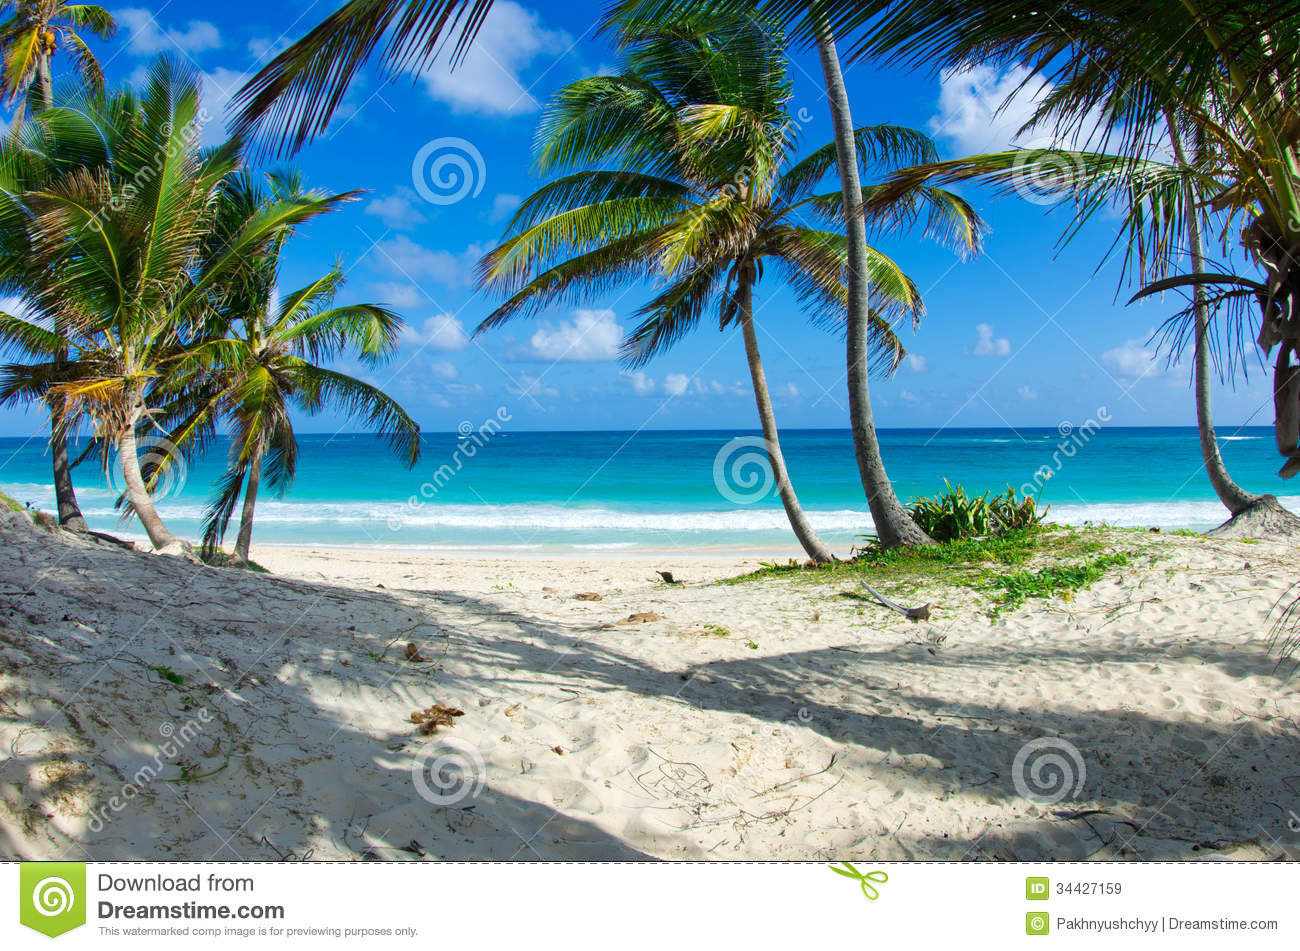 Caribbean Beaches Photo Gallery: Caribbean Beach Stock Image. Image Of Landscape, Plant